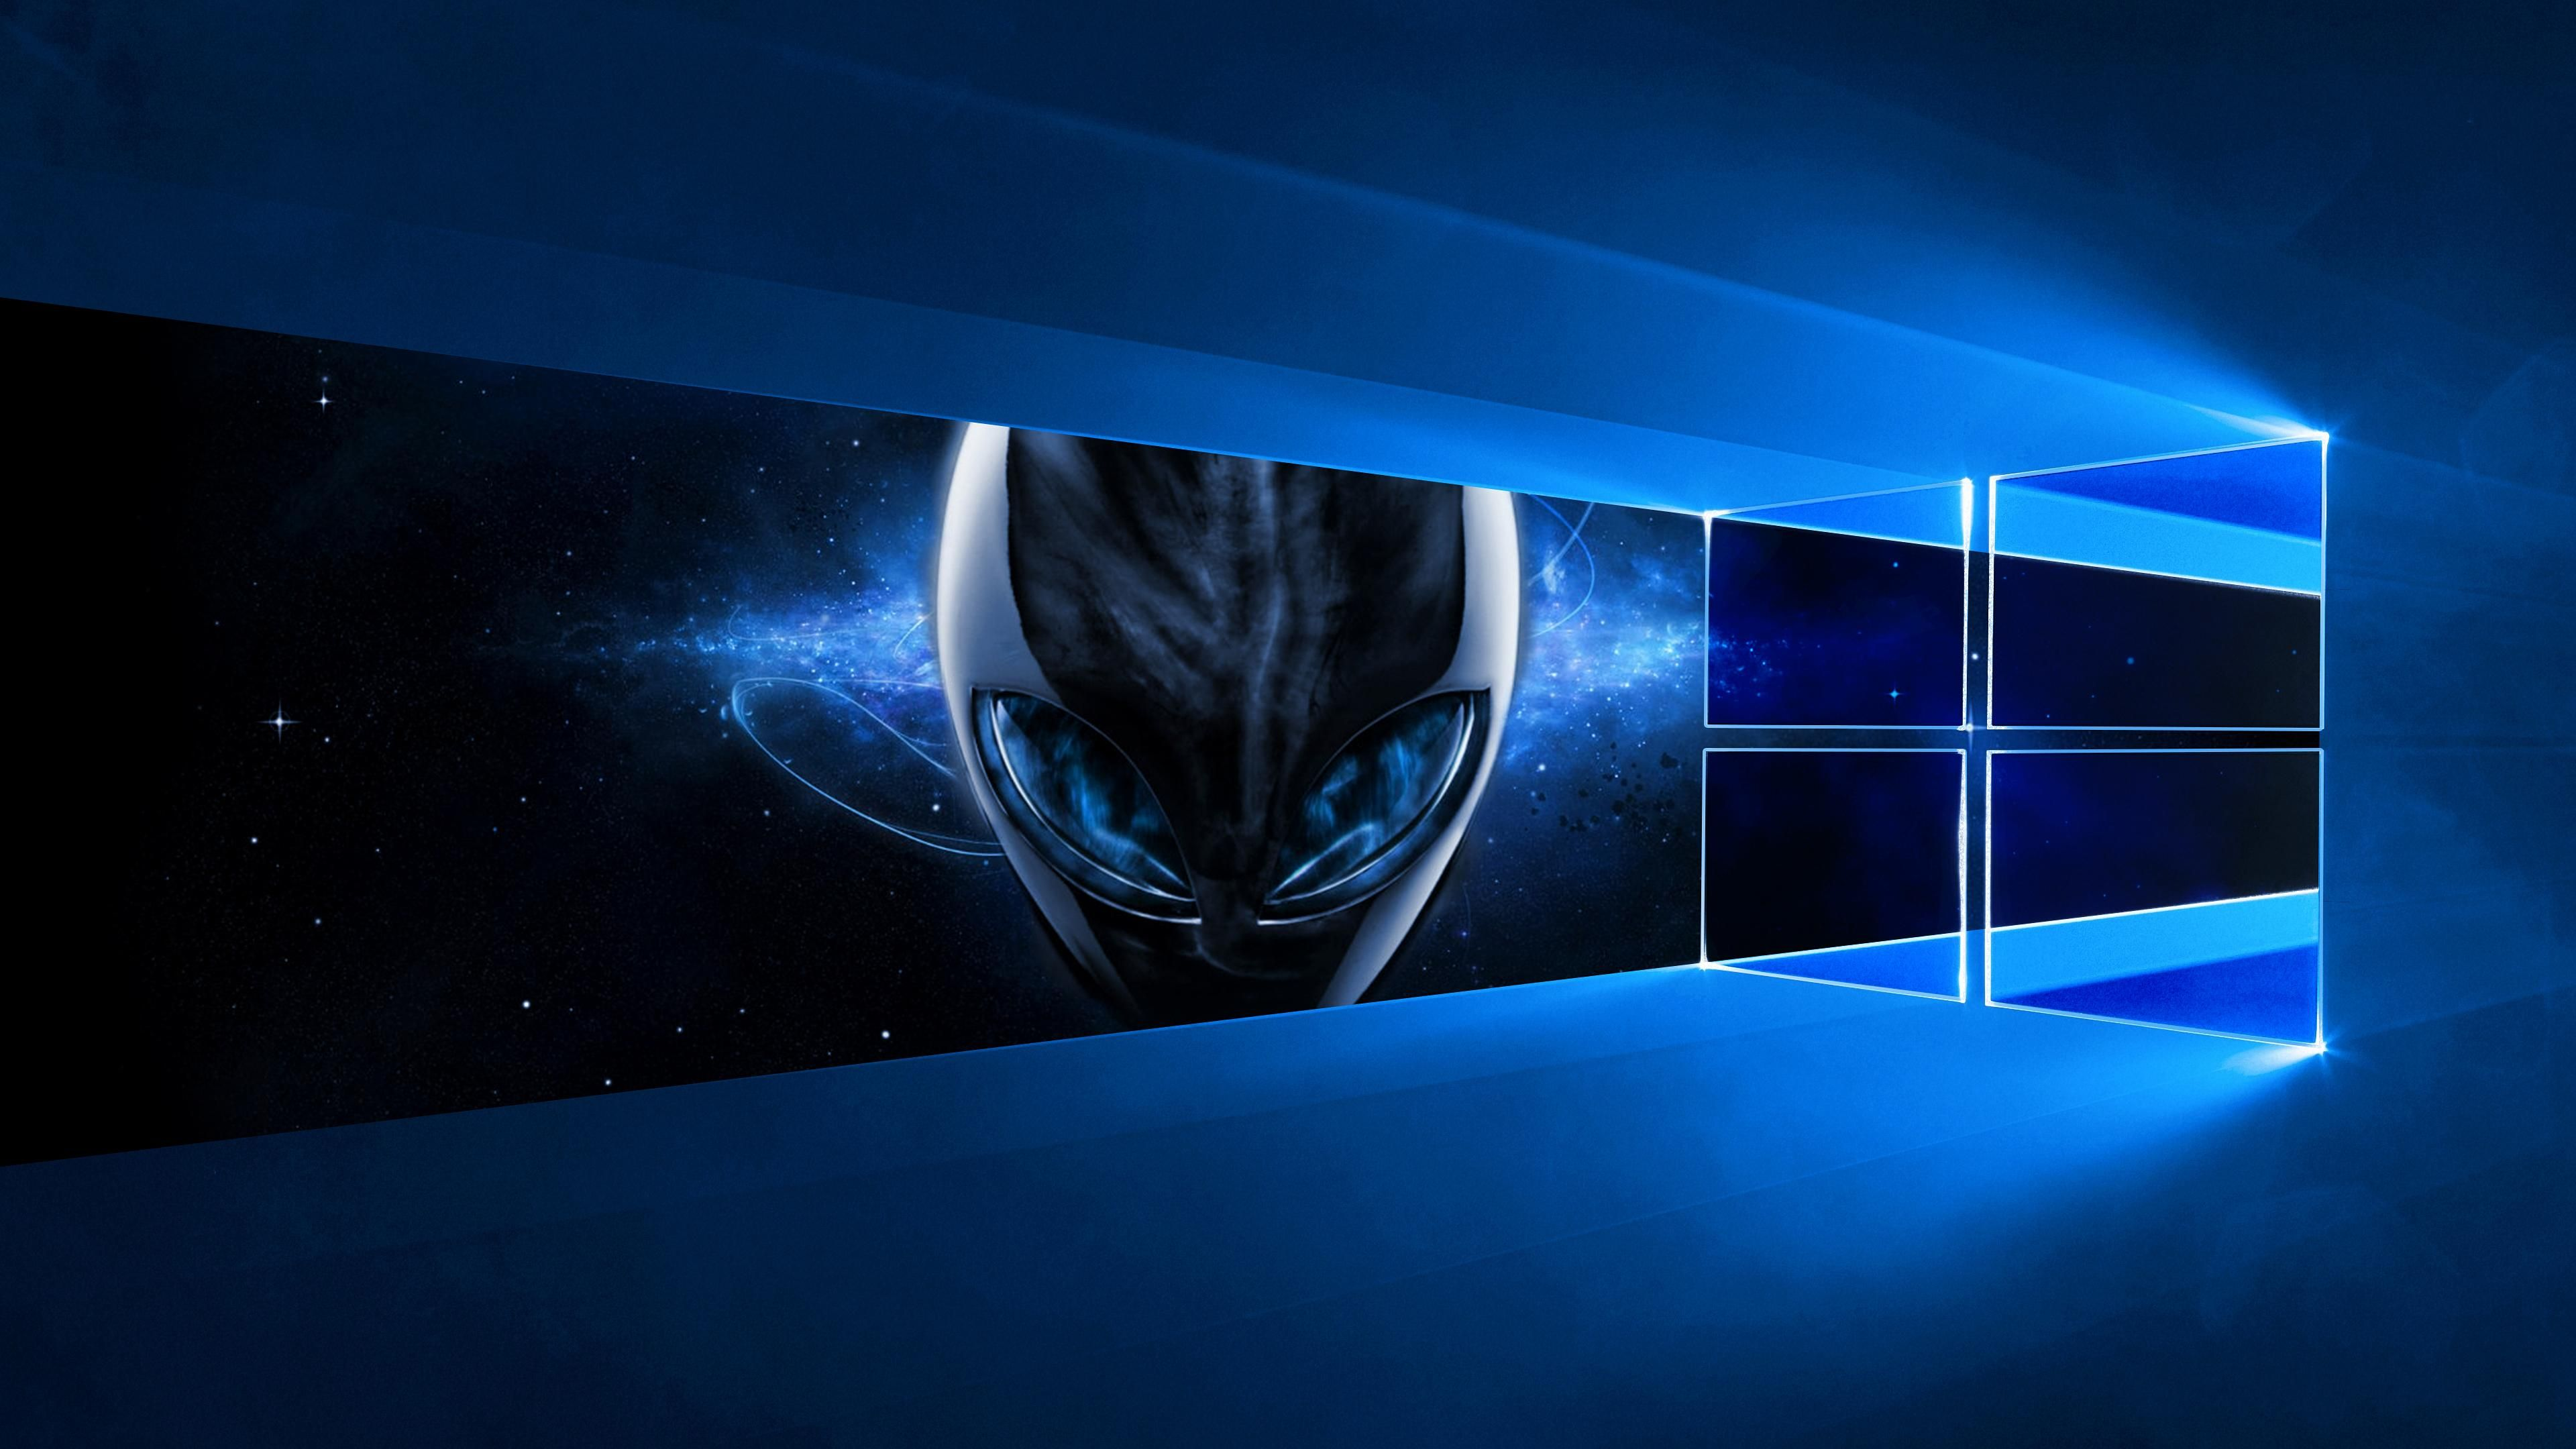 Windows 10 Alienware Wallpaper 3840x2160